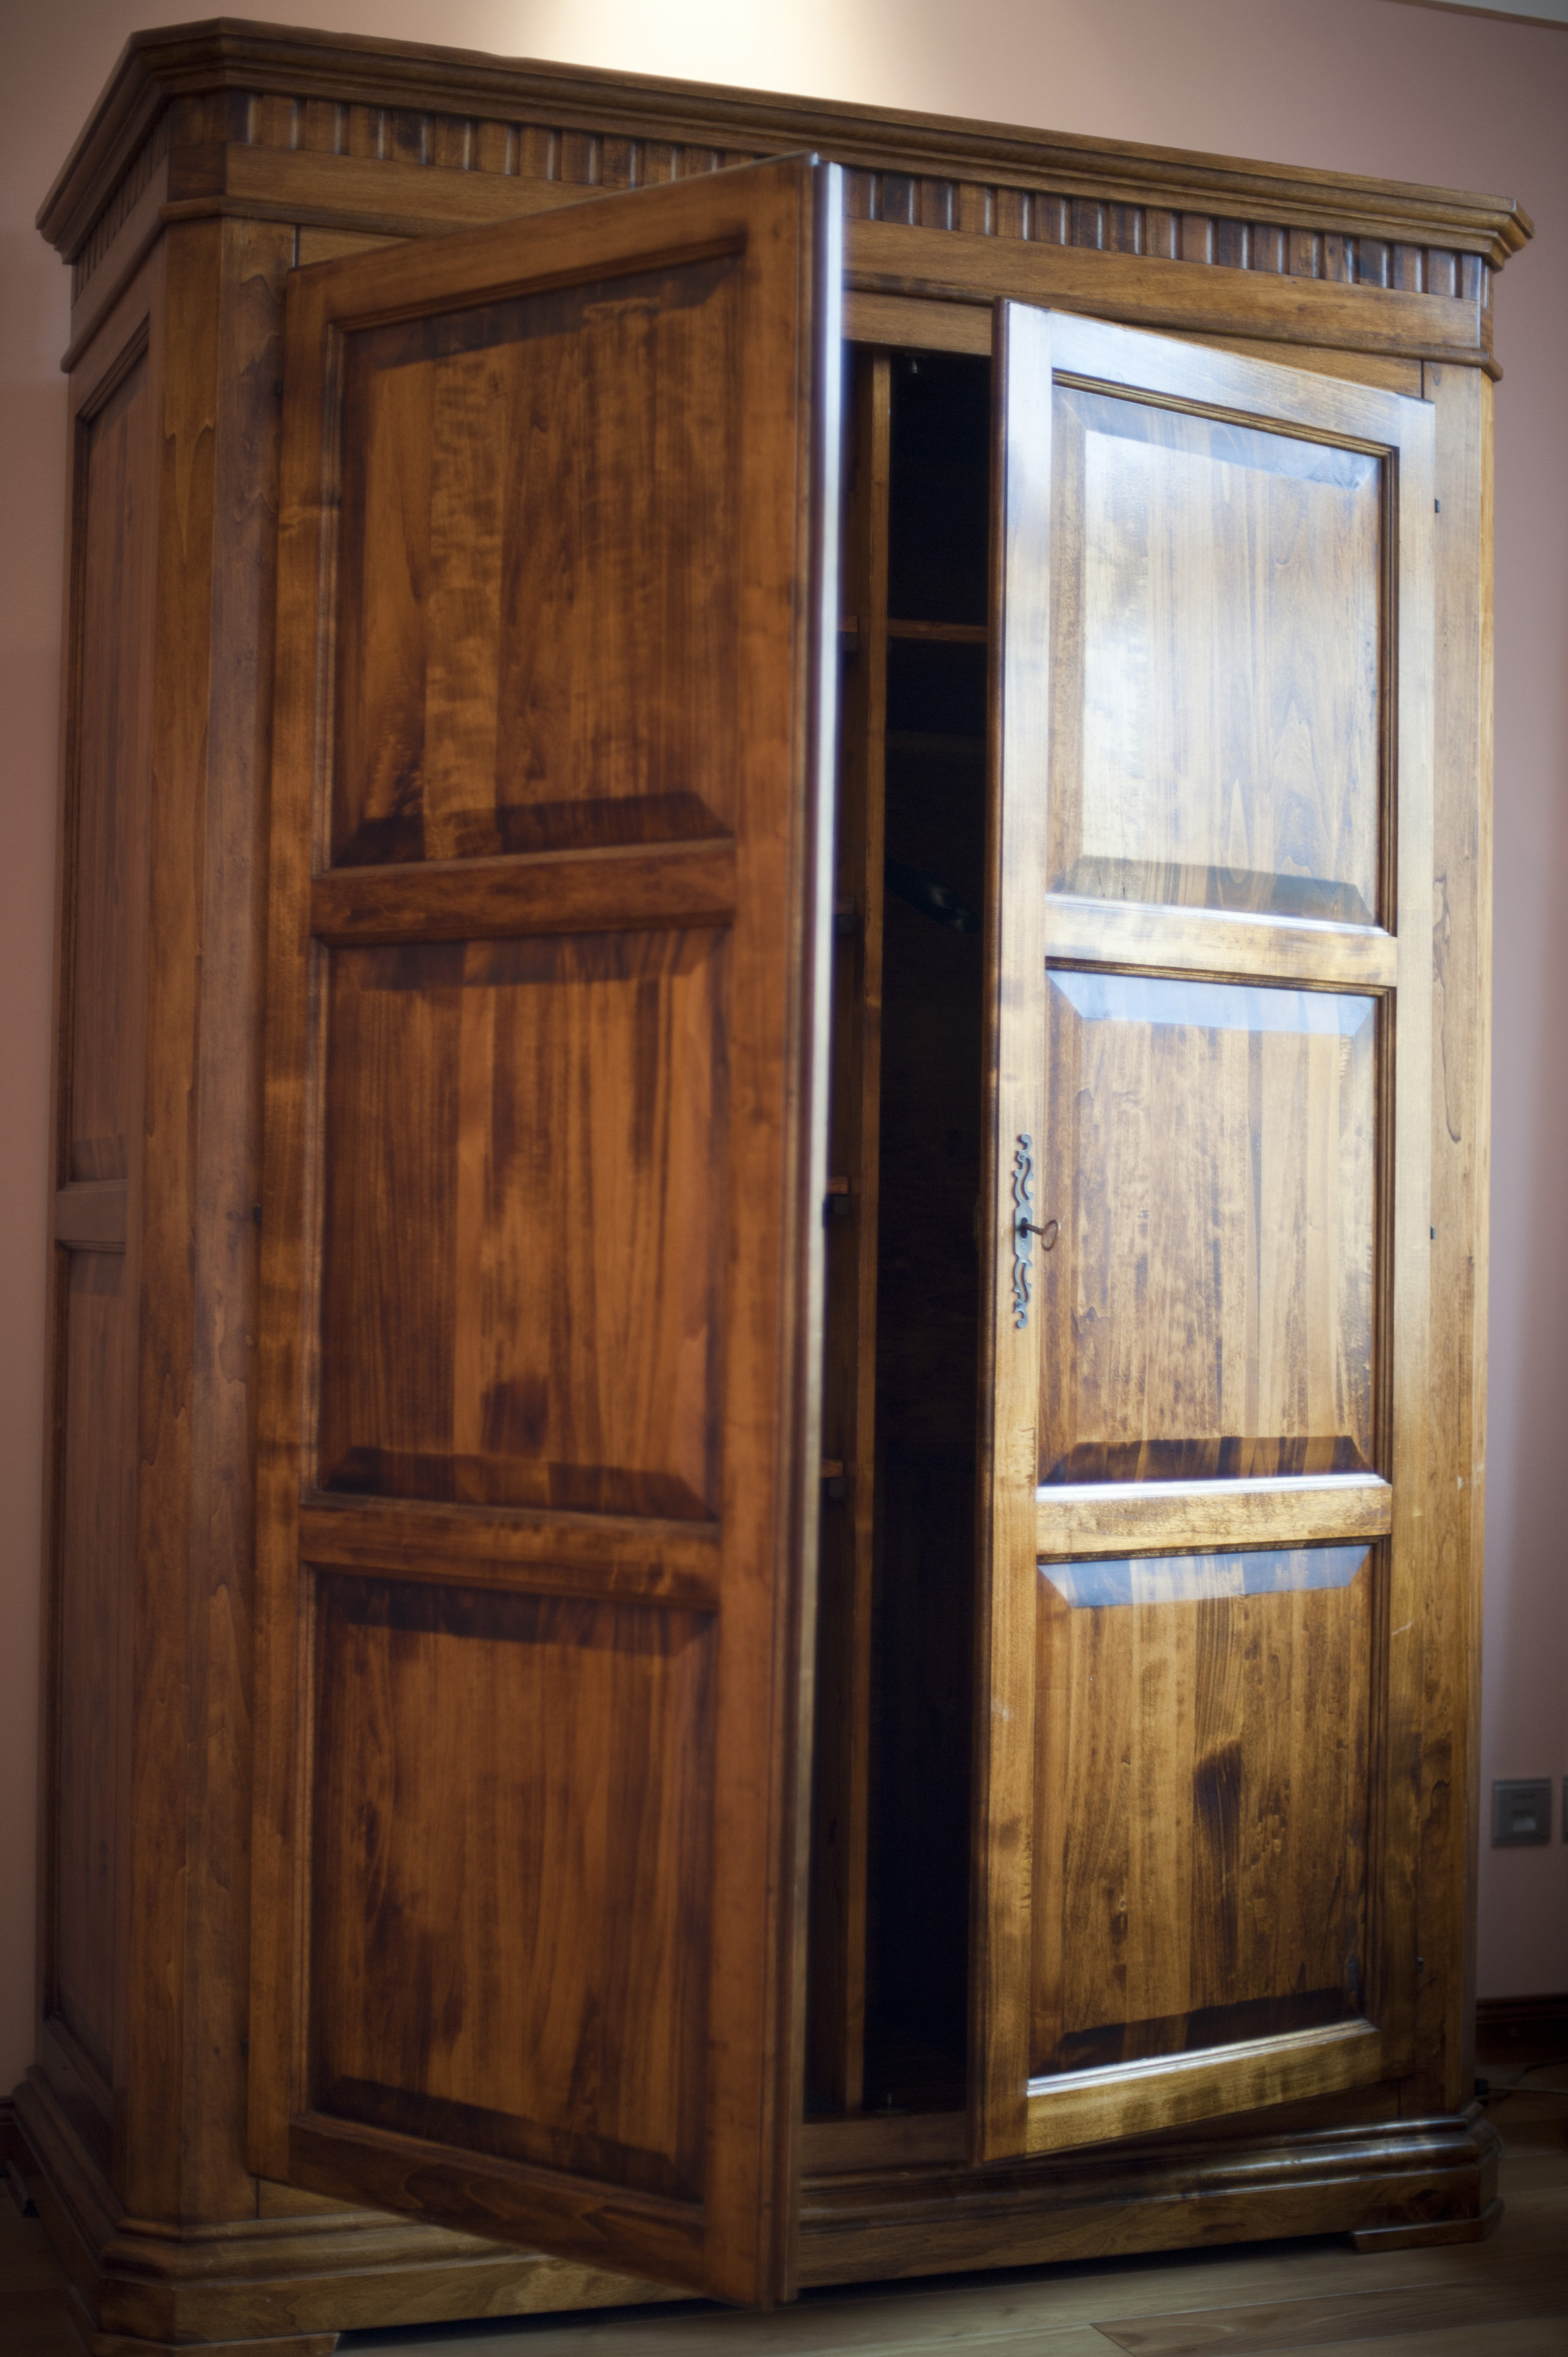 Free Stock Photo 8912 Rustic Wooden Wardrobe Or Armoire